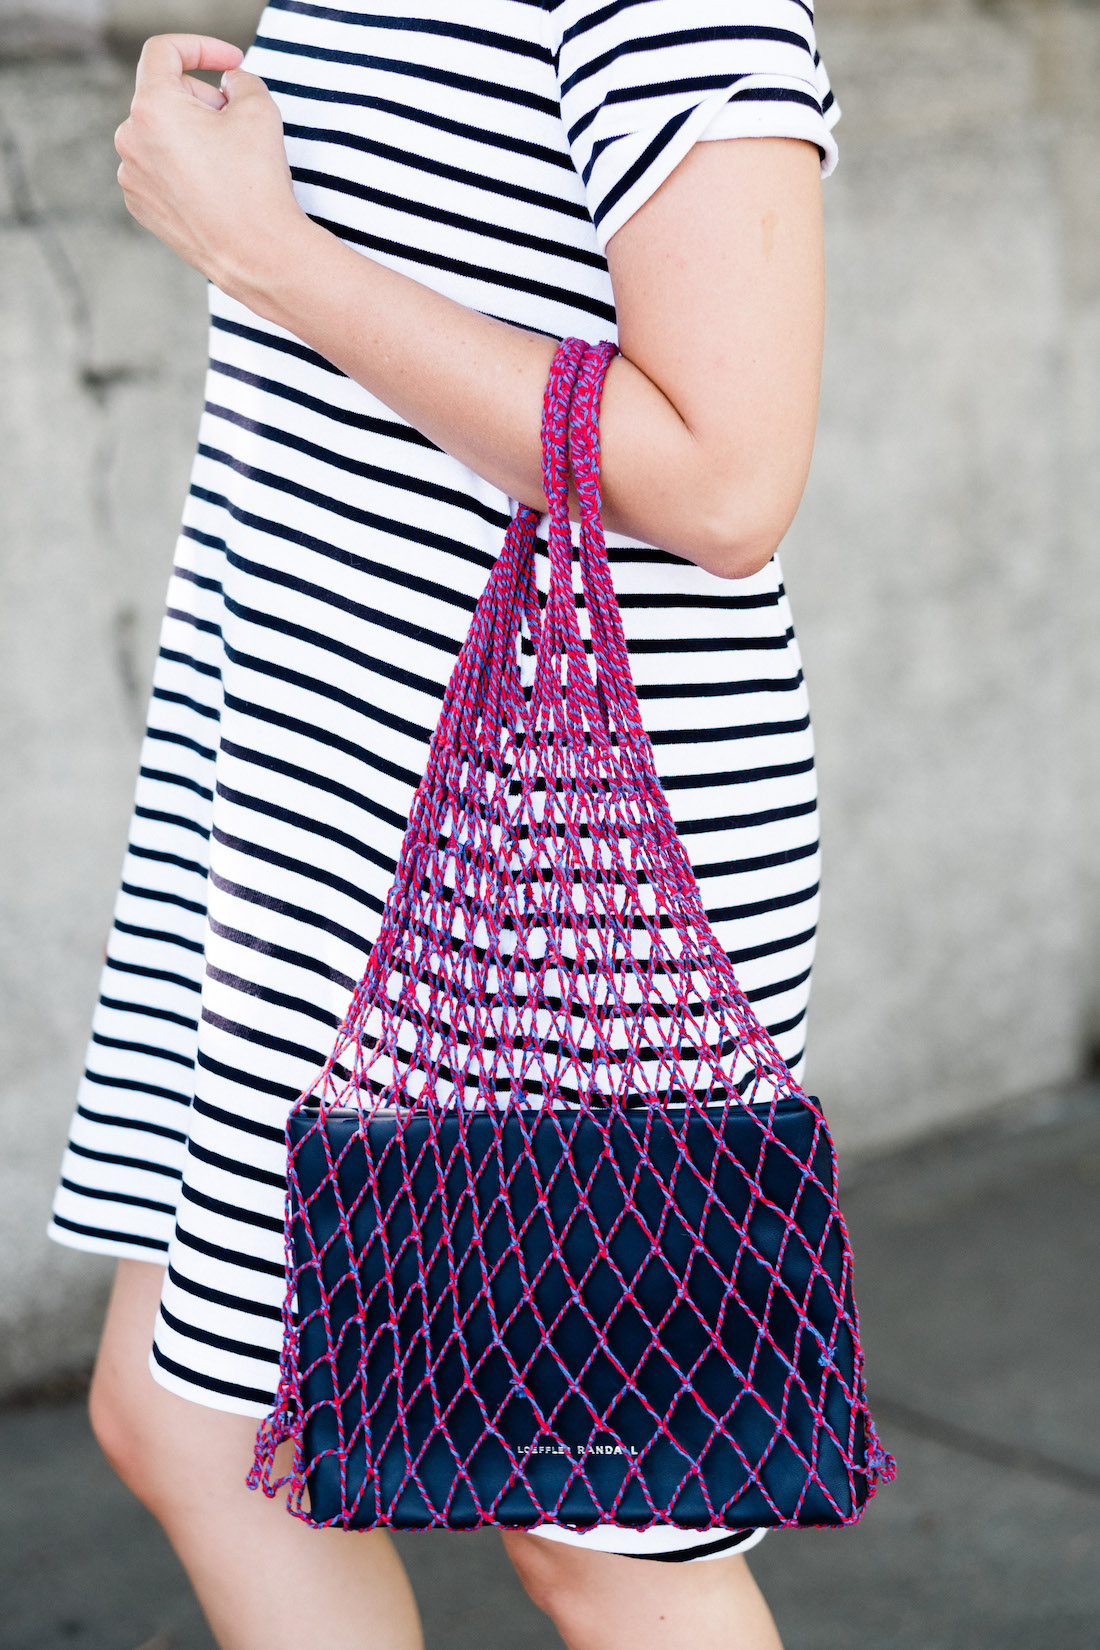 loeffler randall net bag with sacai stripe t-shirt dress